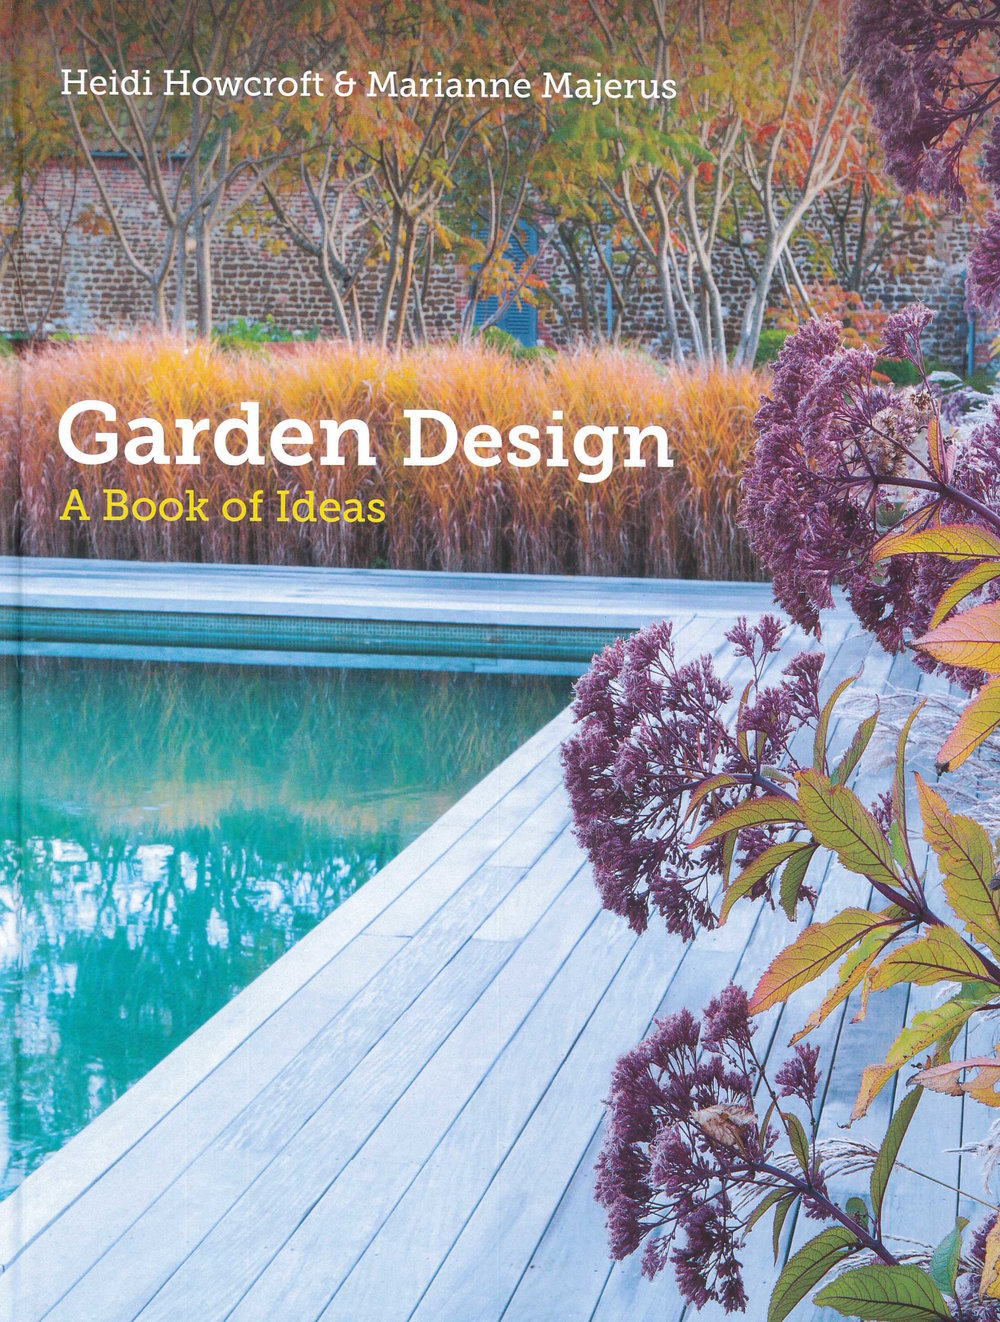 Garden Design, a Book of Ideas